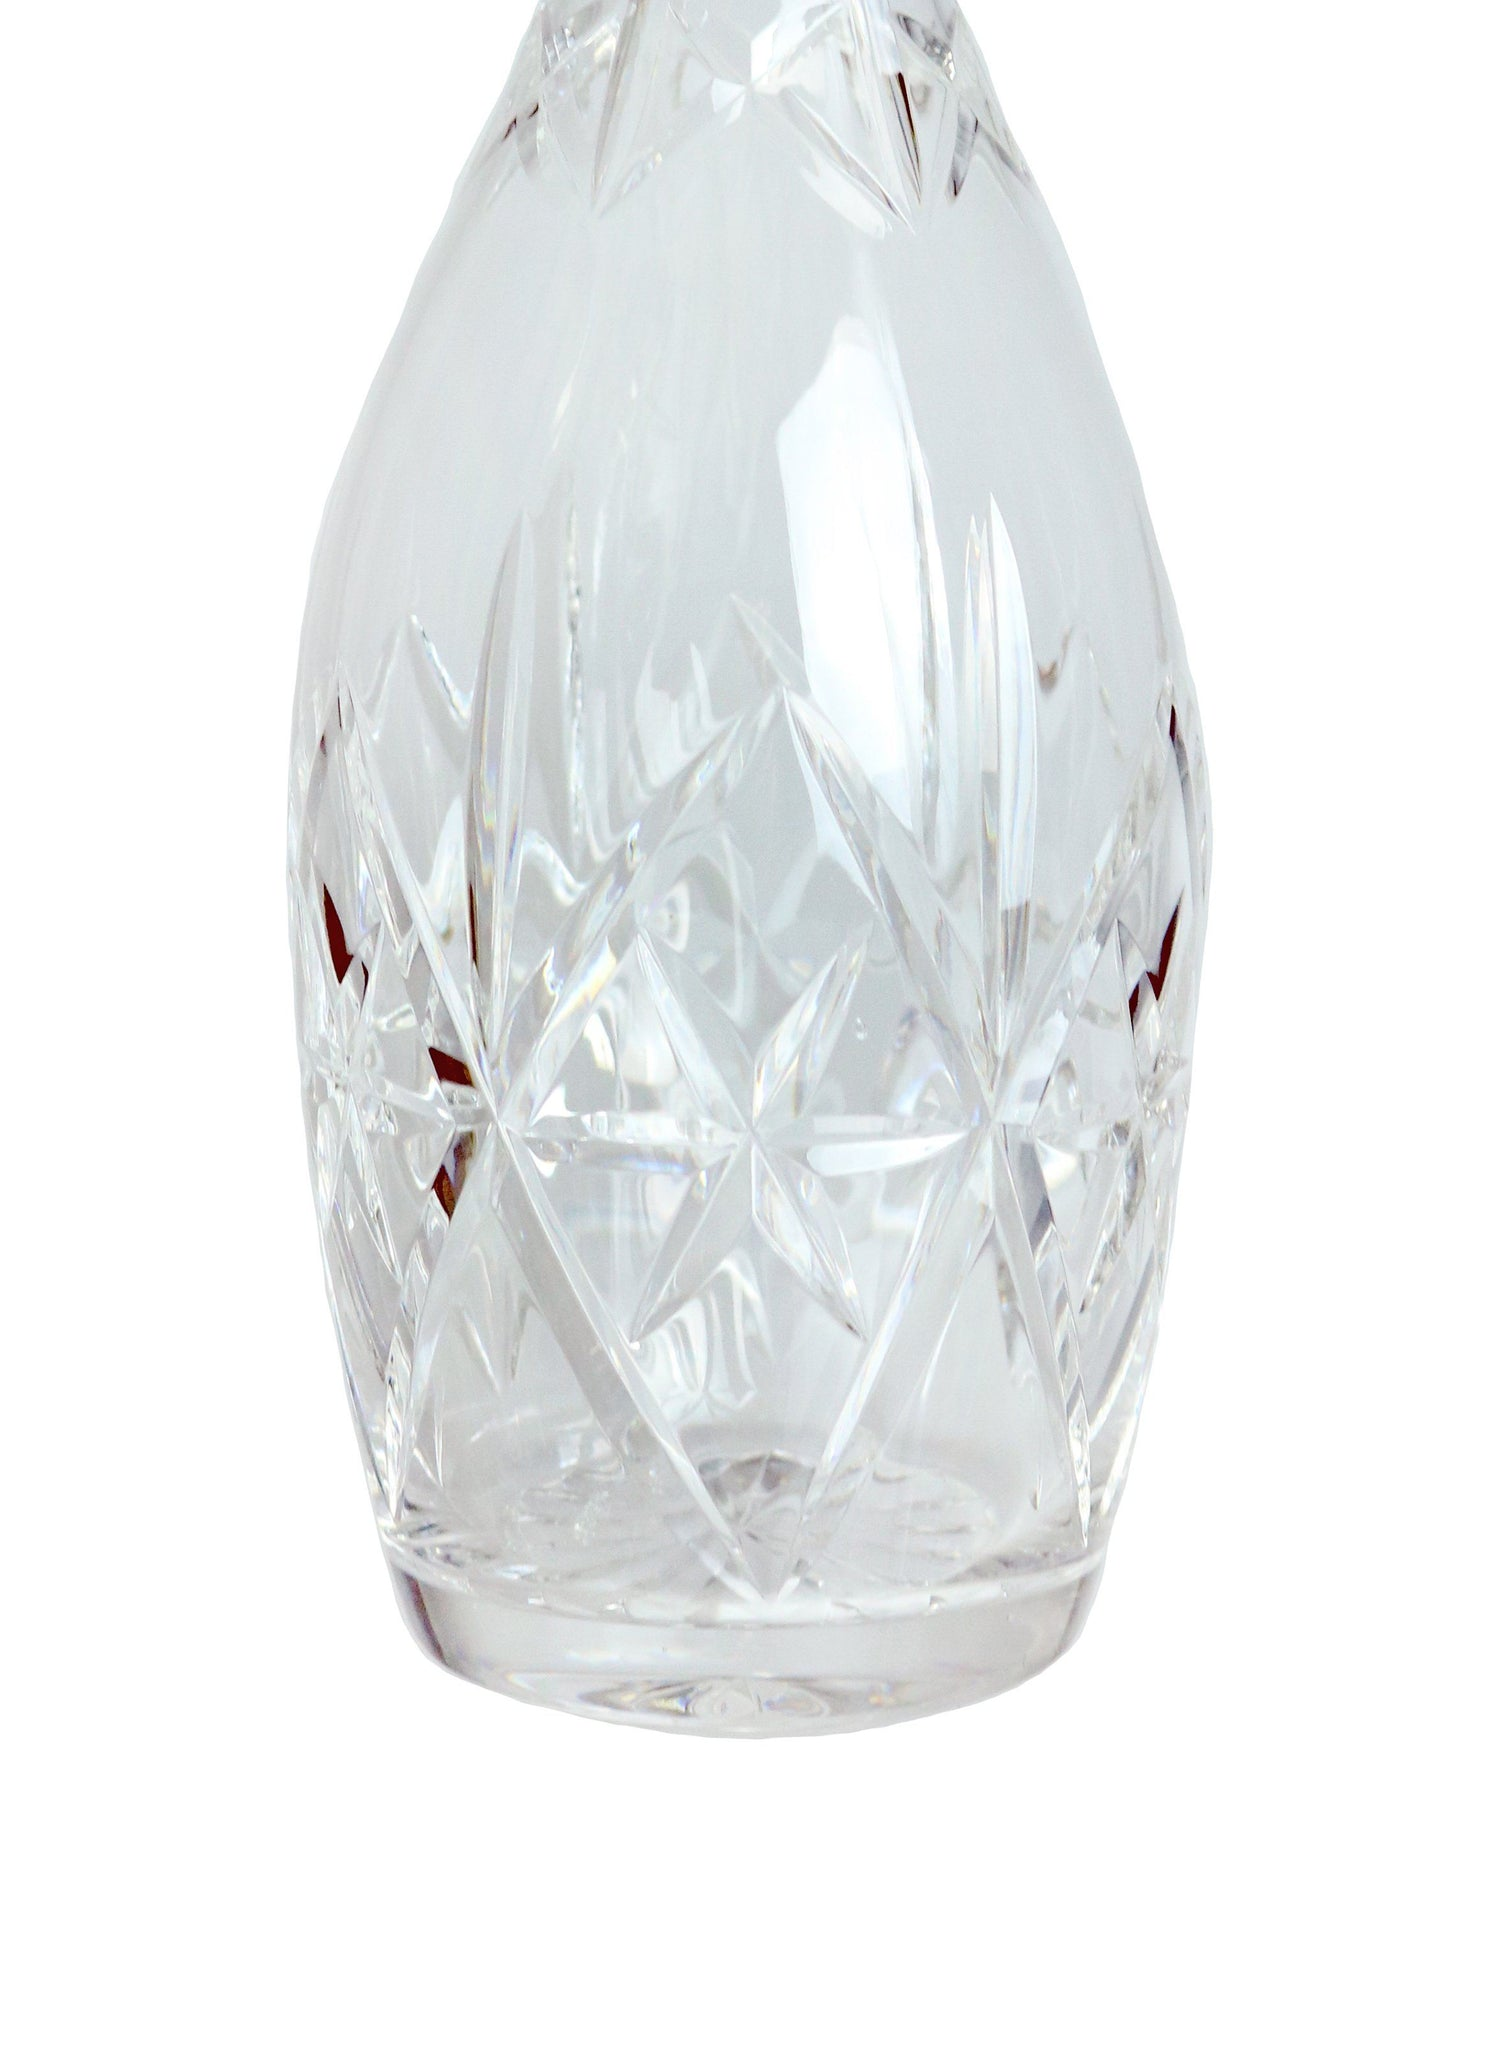 Victorian Glass Drinks Decanter - A Modern Grand Tour